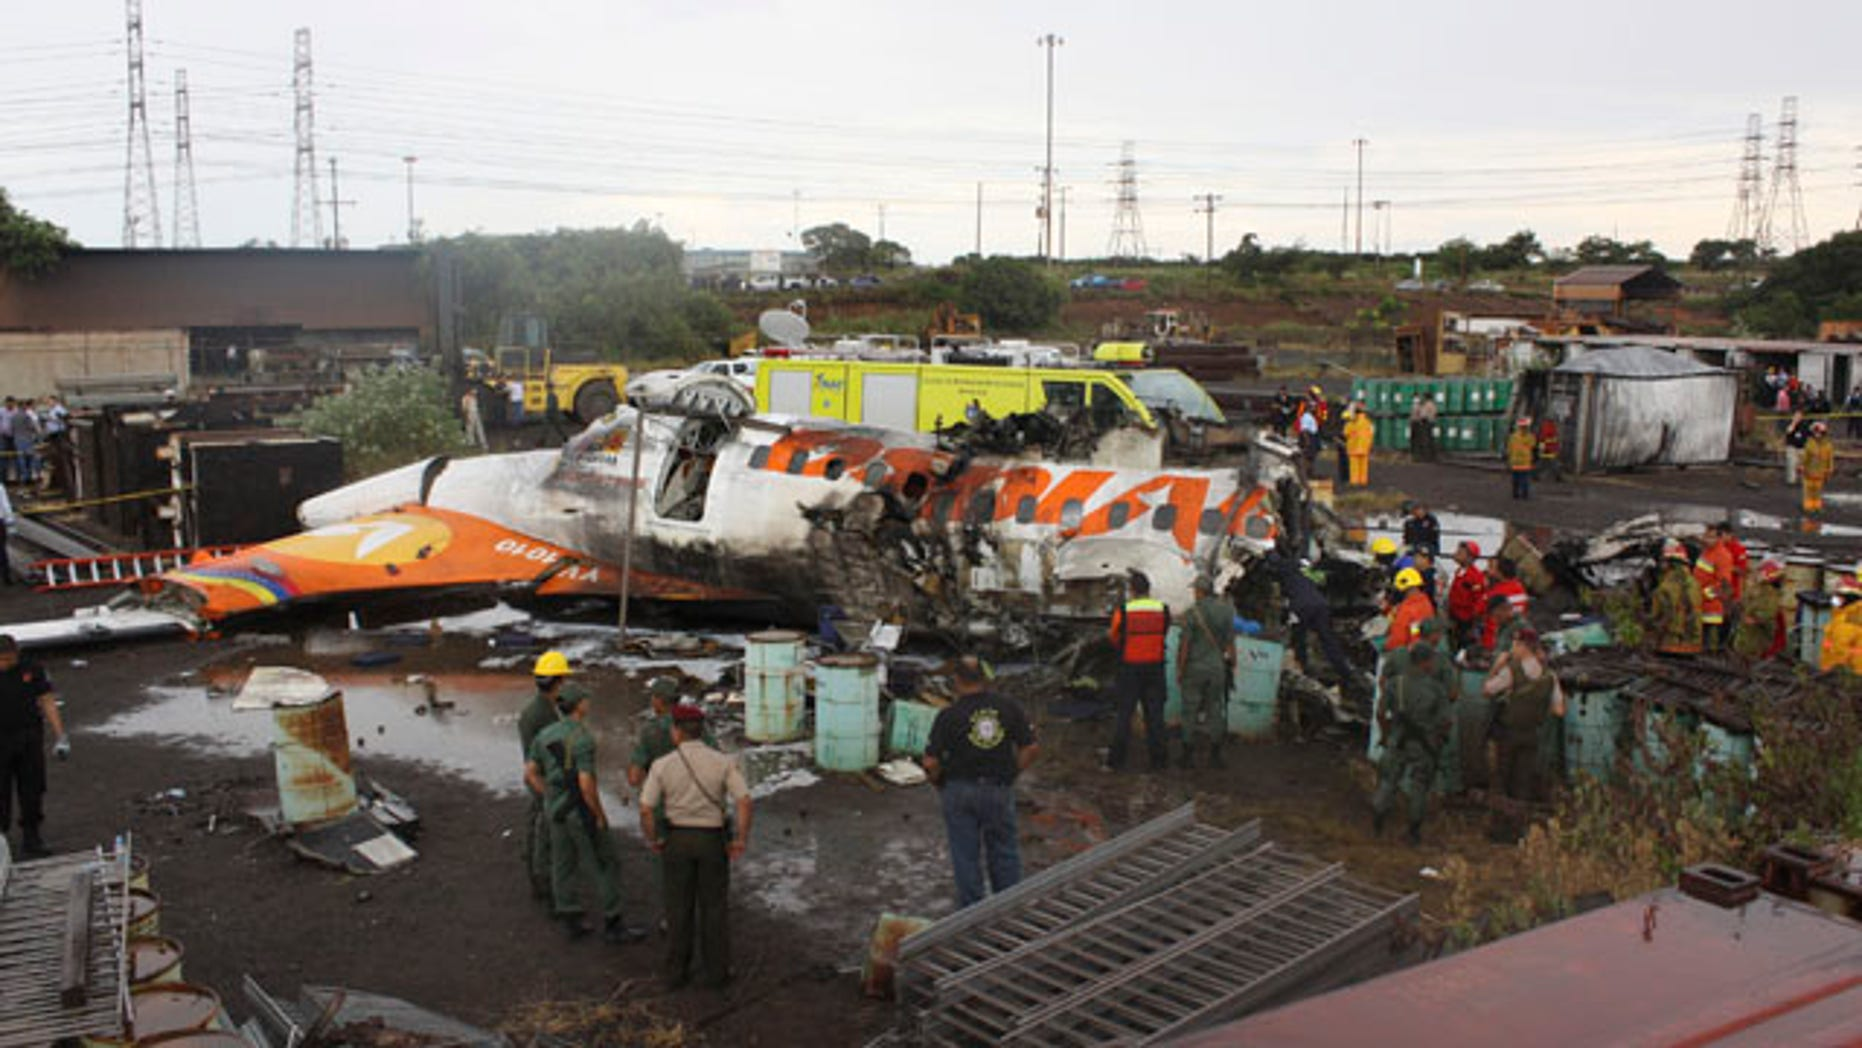 People stand around the wreckage of a state-run Conviasa airline plane after it crashed into a lot used by the state-run Sidor steel foundry near Puerto Ordaz, Venezuela, Monday Sept. 13, 2010.